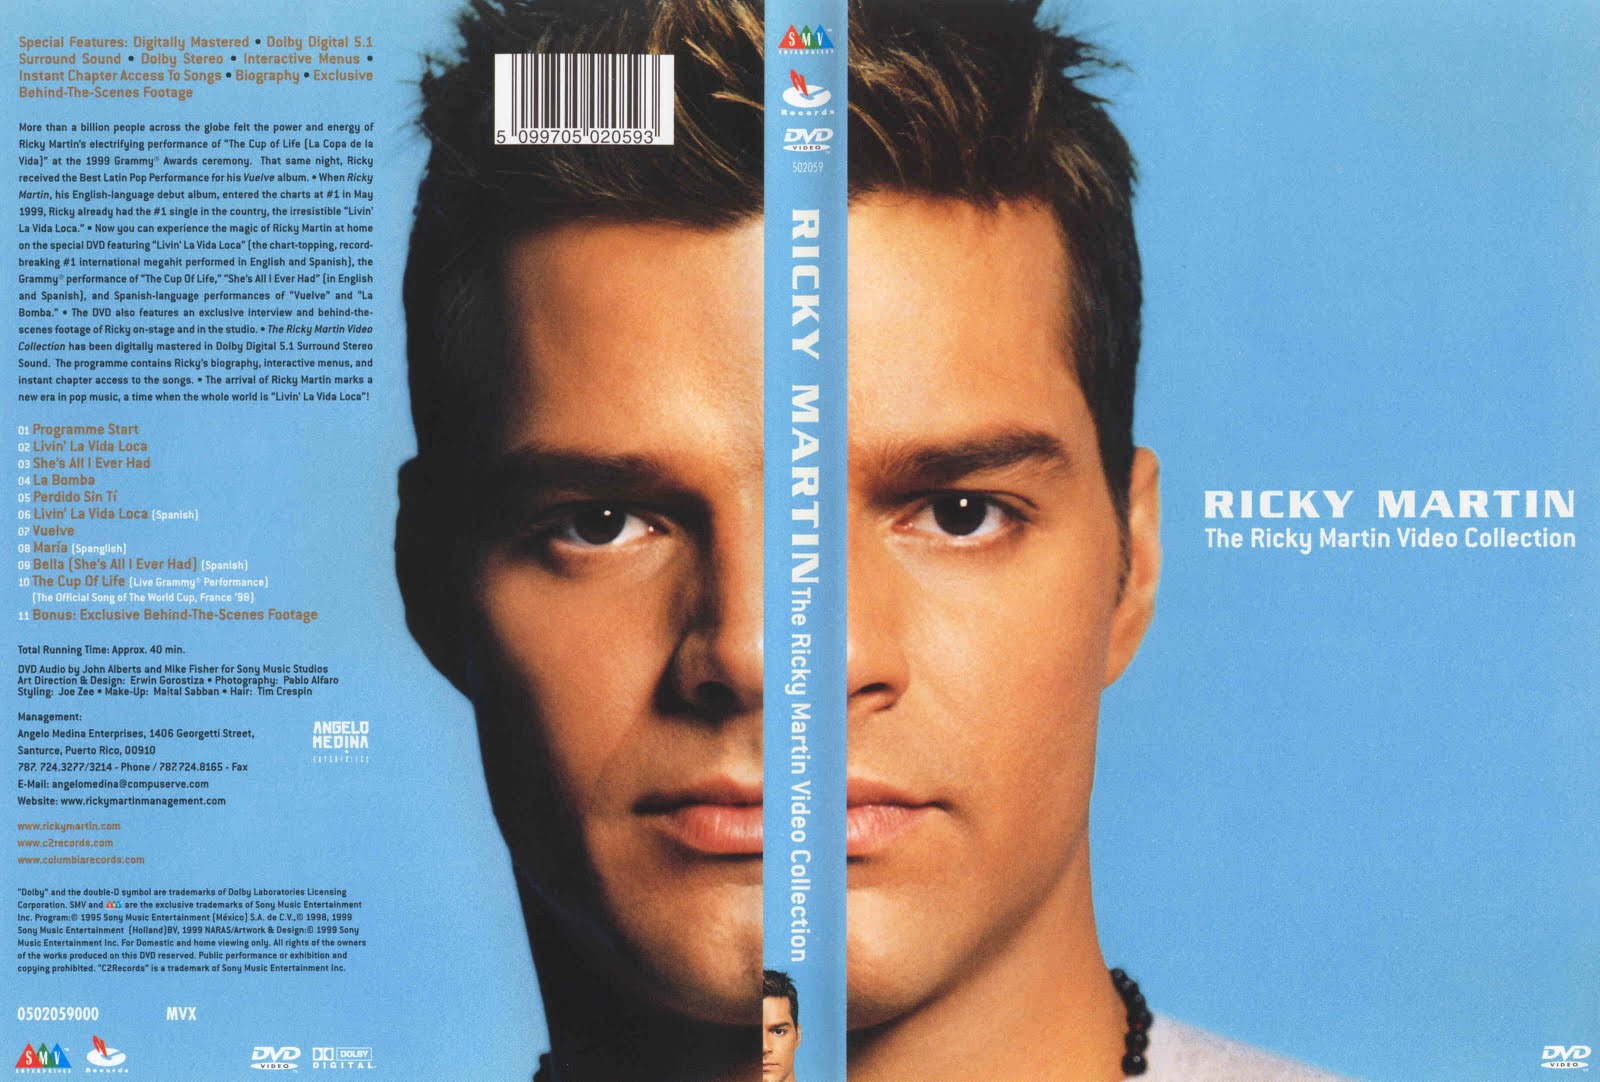 http://1.bp.blogspot.com/_PiUVny6RPwY/S9Xl9ygKZ6I/AAAAAAAAAnw/Ib7s2hT1l8s/s1600/Ricky+Martin+-+The+Video+Collection.jpg